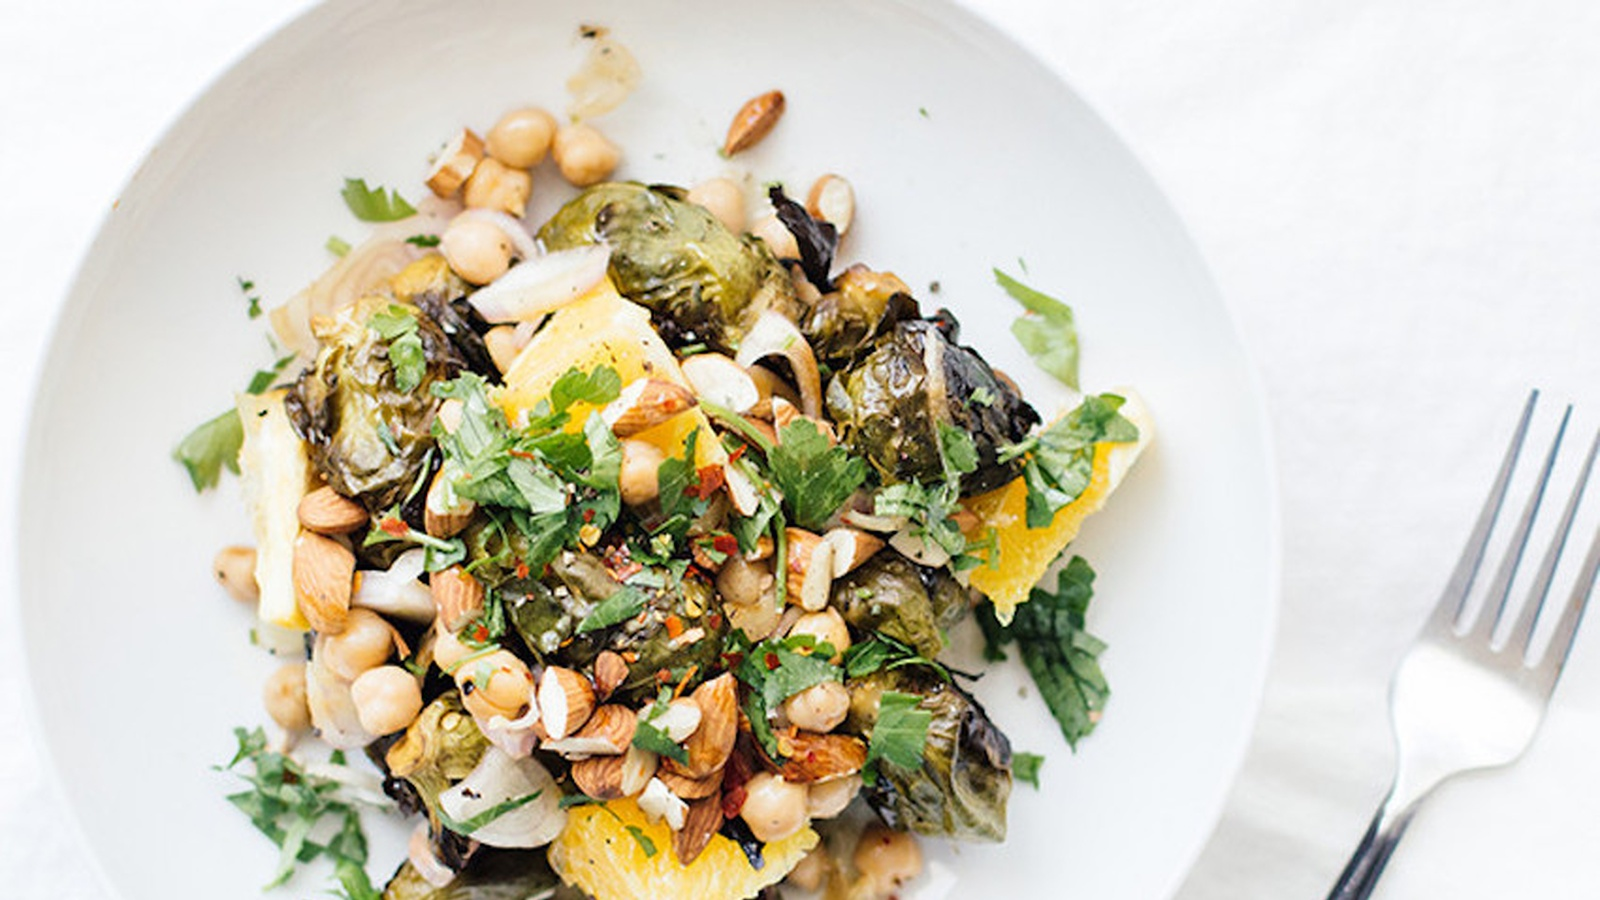 Citrus Chickpea & Brussel Sprout Salad